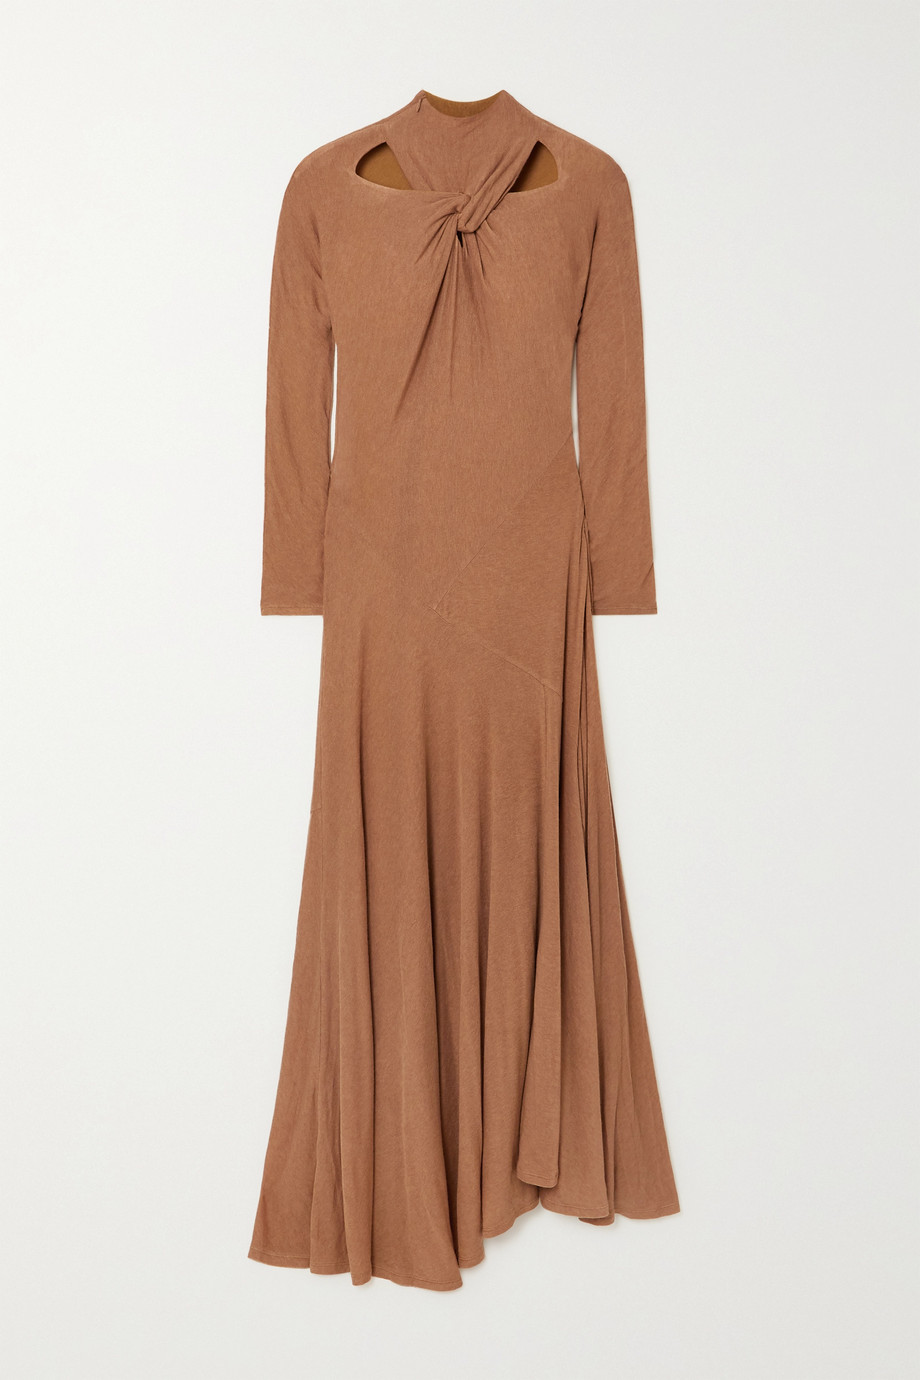 REJINA PYO + NET SUSTAIN Maia cutout twist-front TENCEL-blend jersey maxi dress